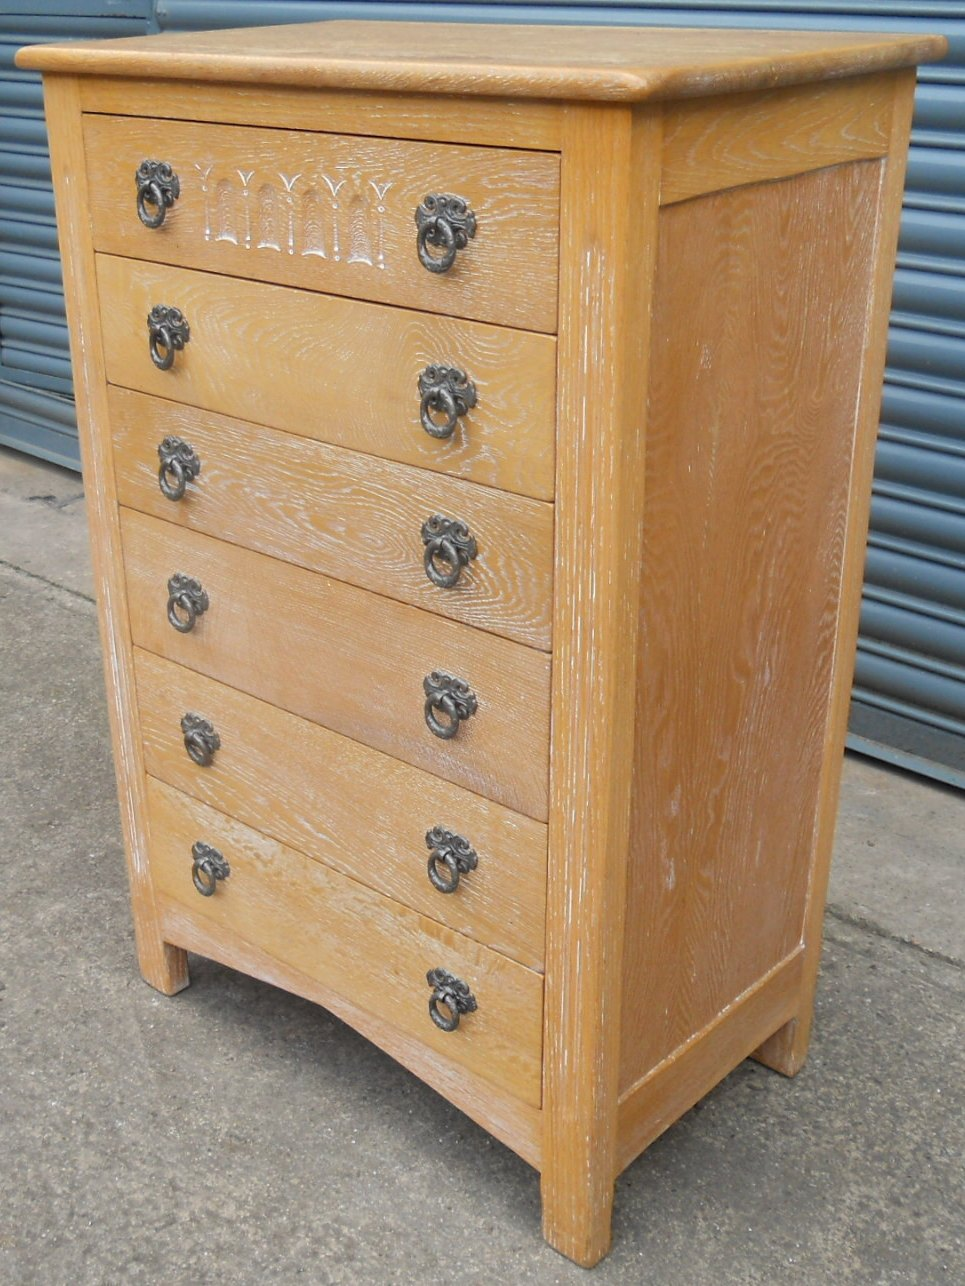 Sold Limed Oak Tall Narrow Chest Of Drawers